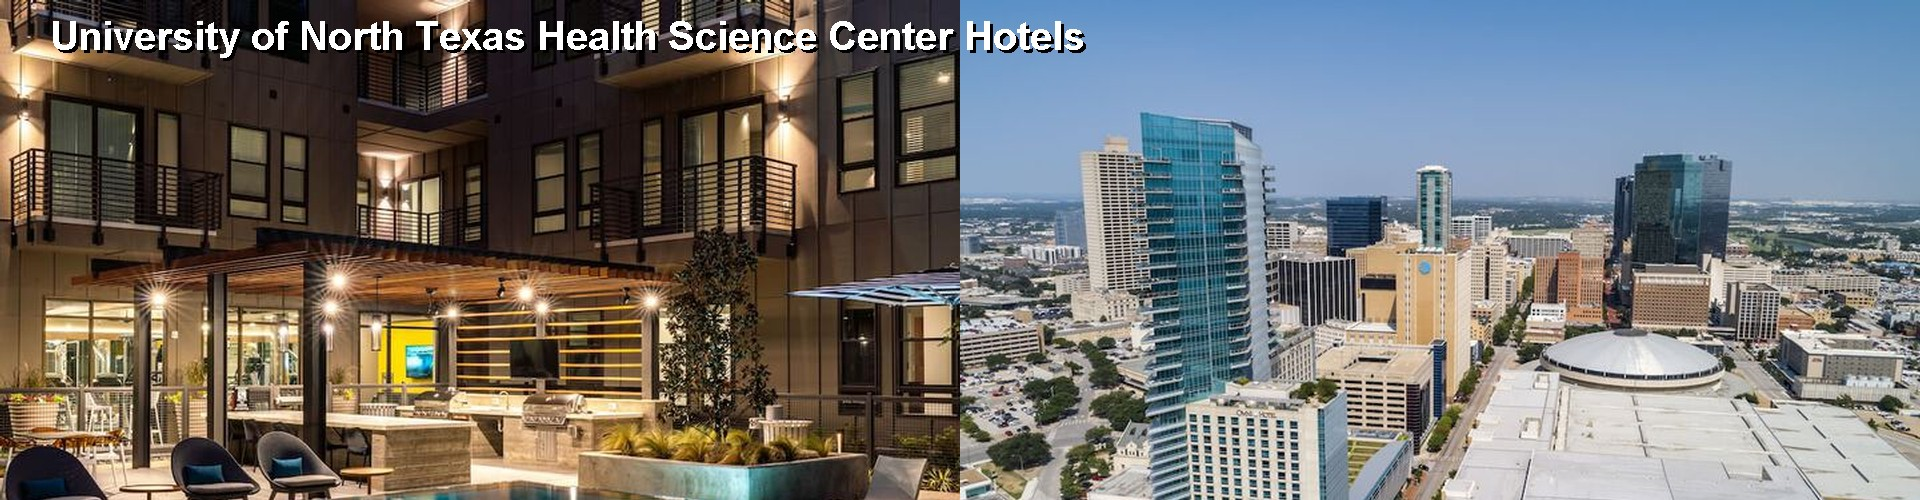 5 Best Hotels near University of North Texas Health Science Center